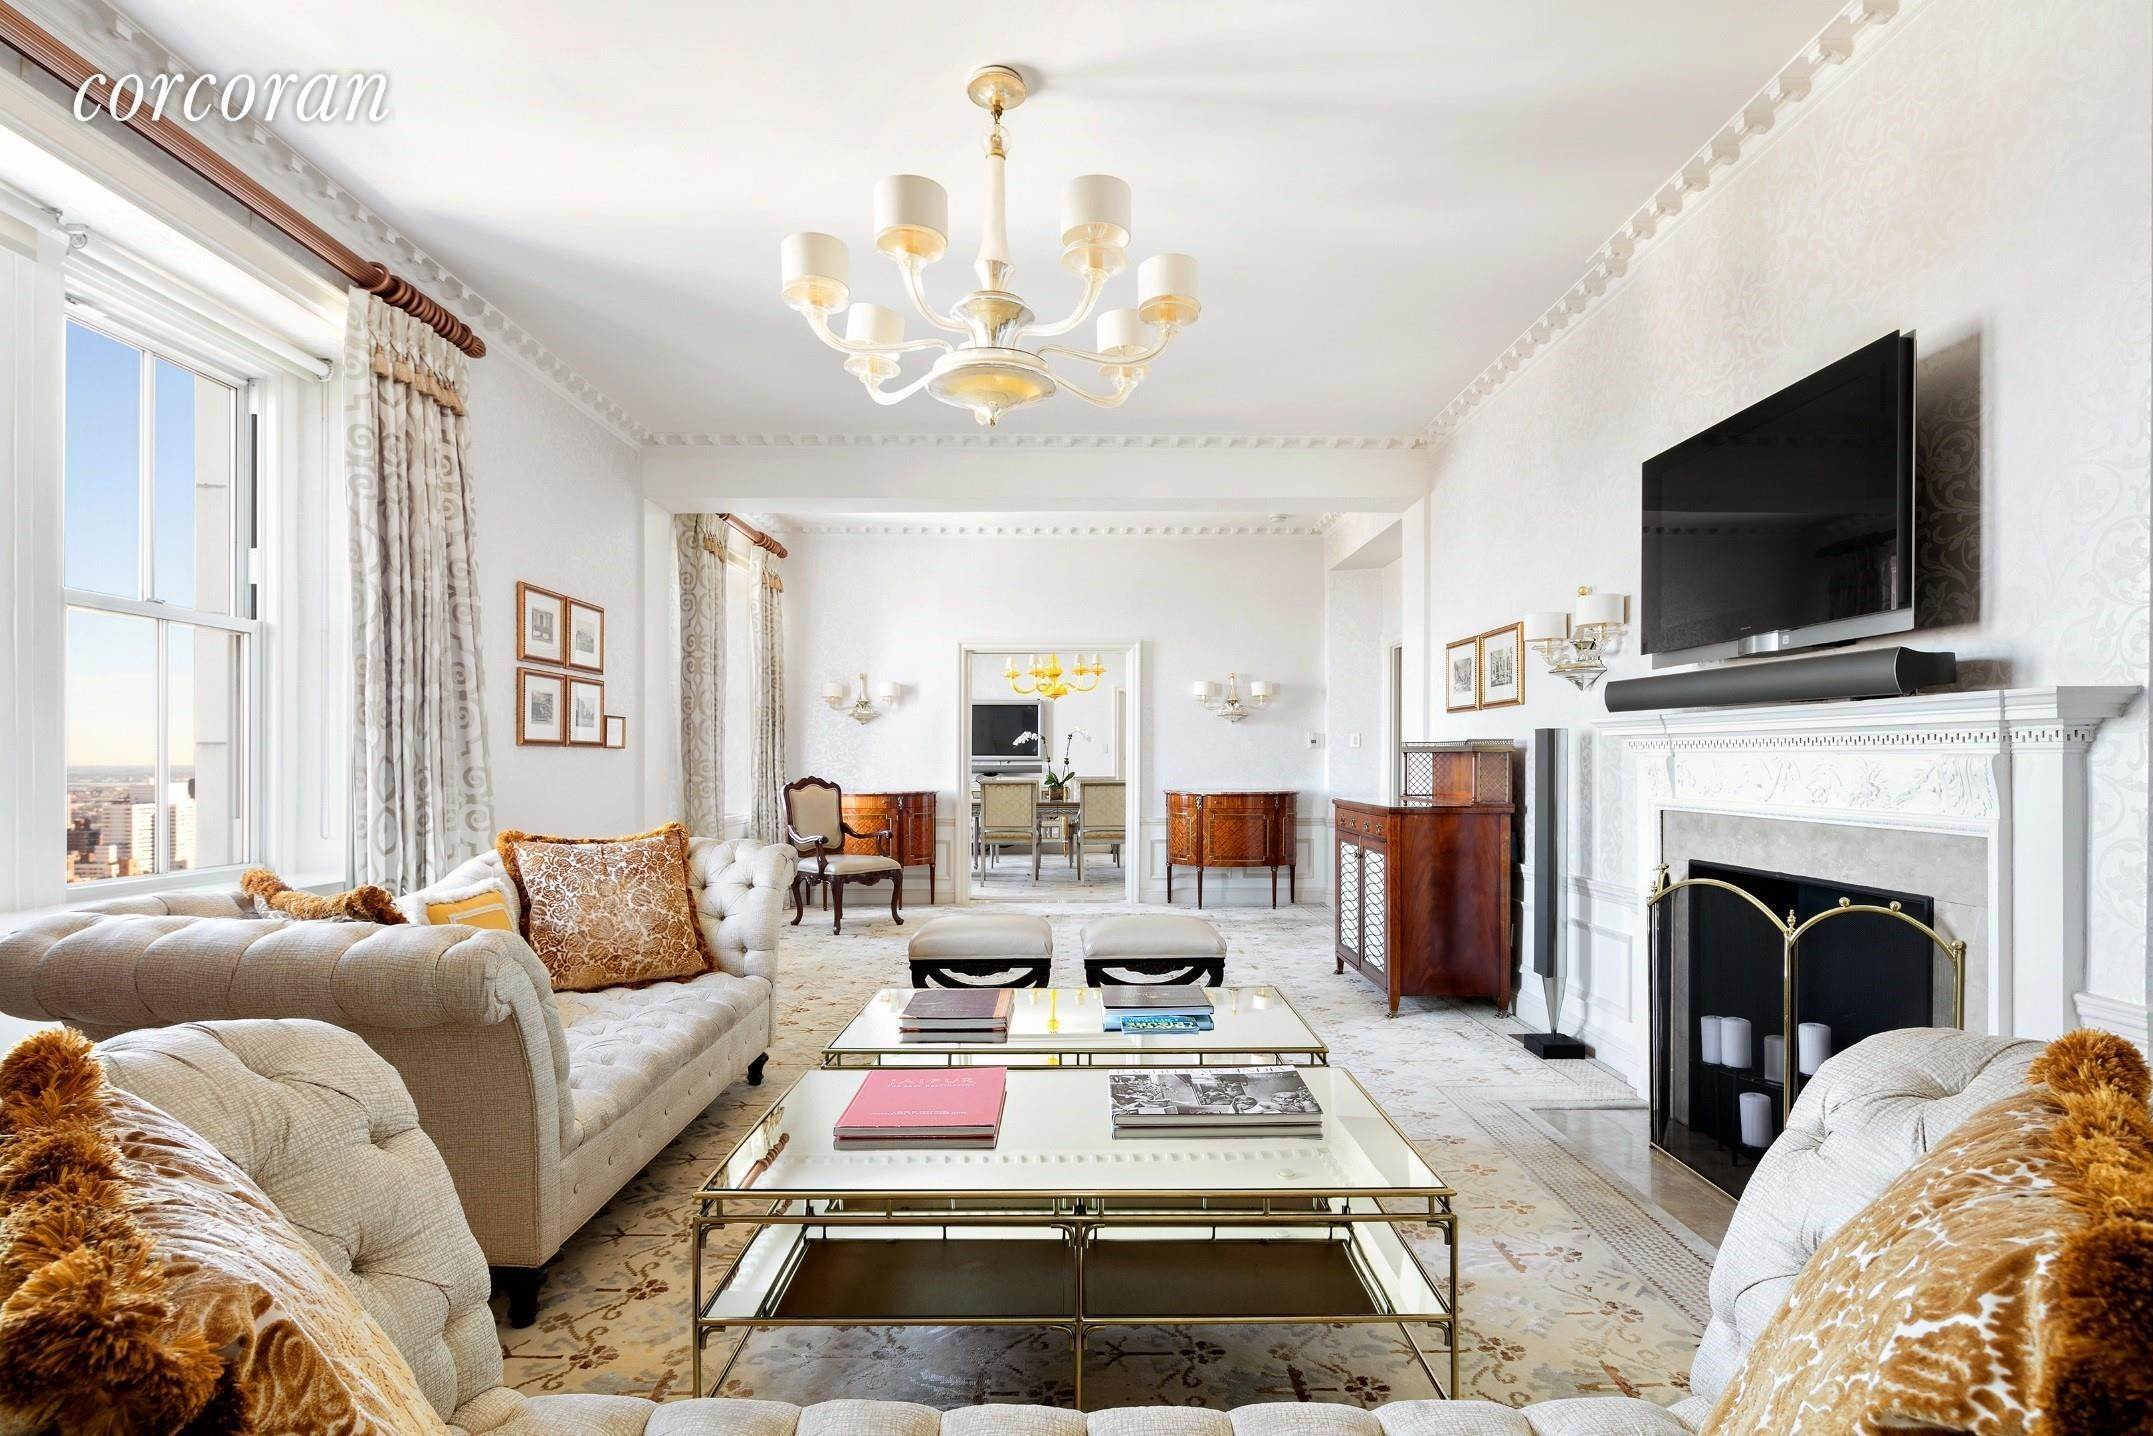 Co-op property for Rent at The Pierre 795 Fifth Avenue, 39 New York, New York,10065 United States